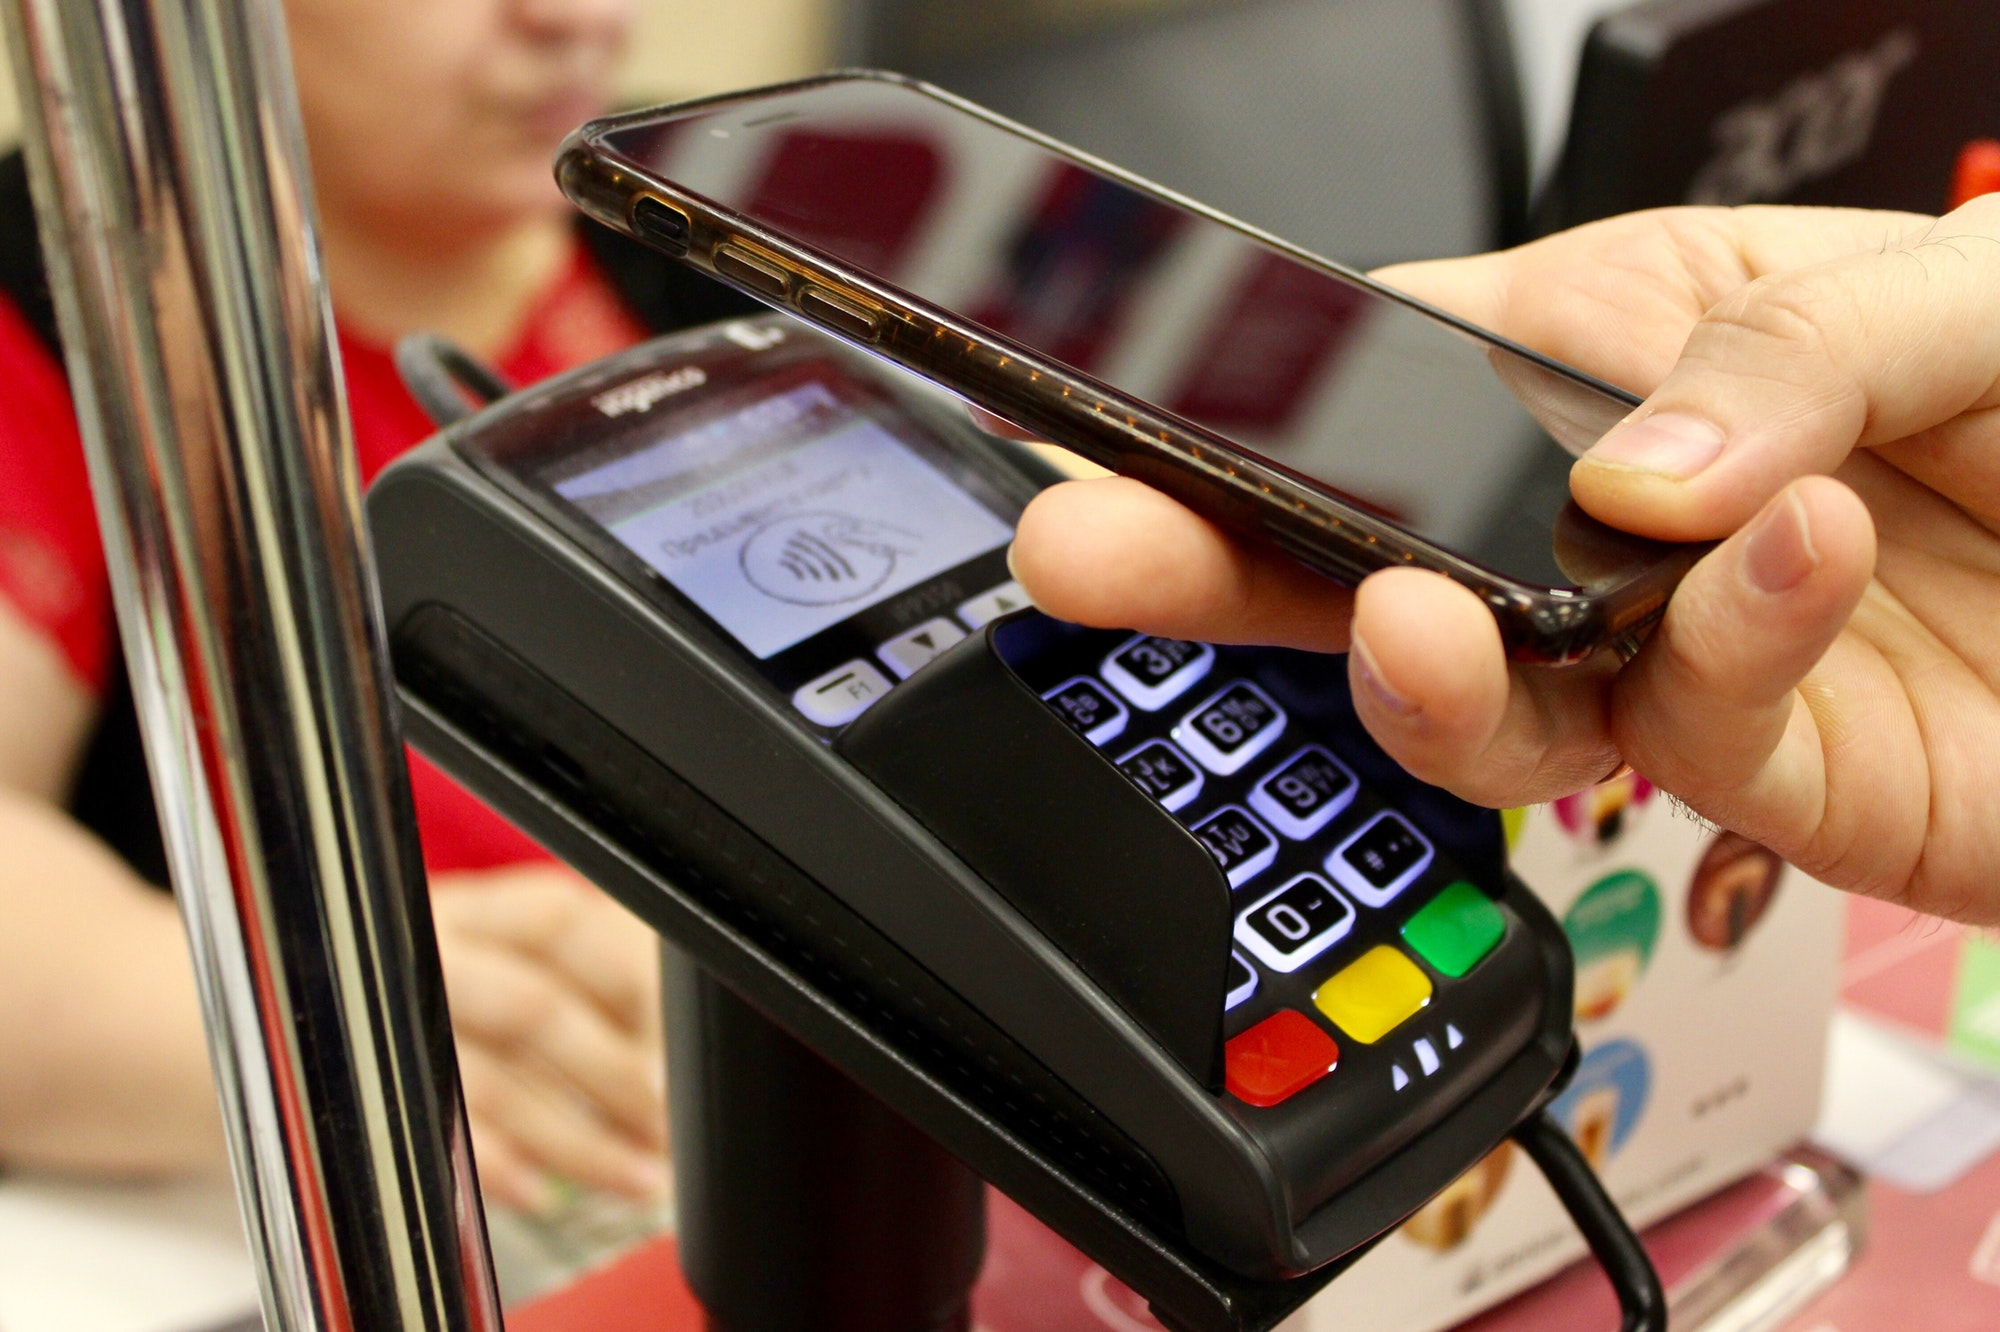 Payment with mobile phone device